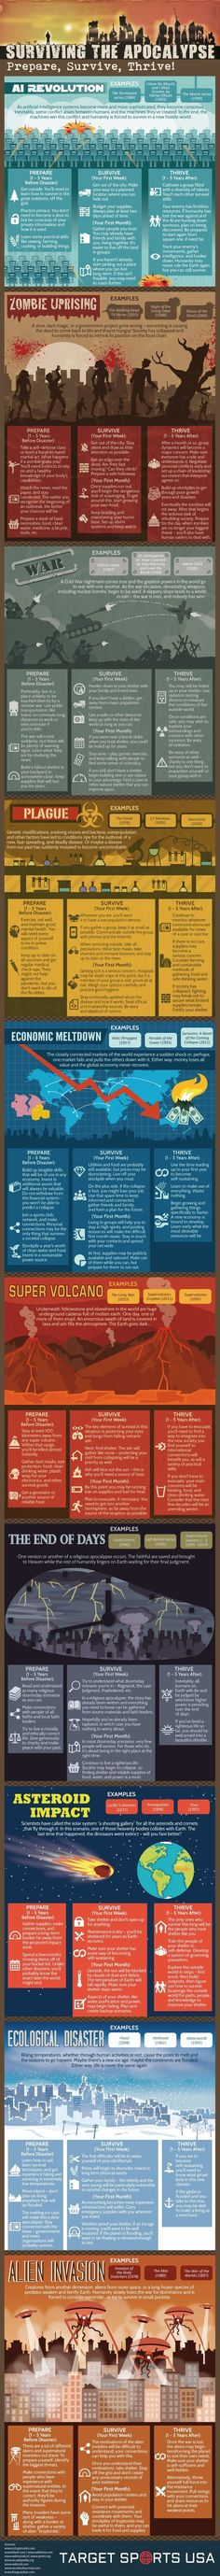 Surviving the Apocalypse: Prepare, Survive, Thrive! #Infographic #ScienceFiction